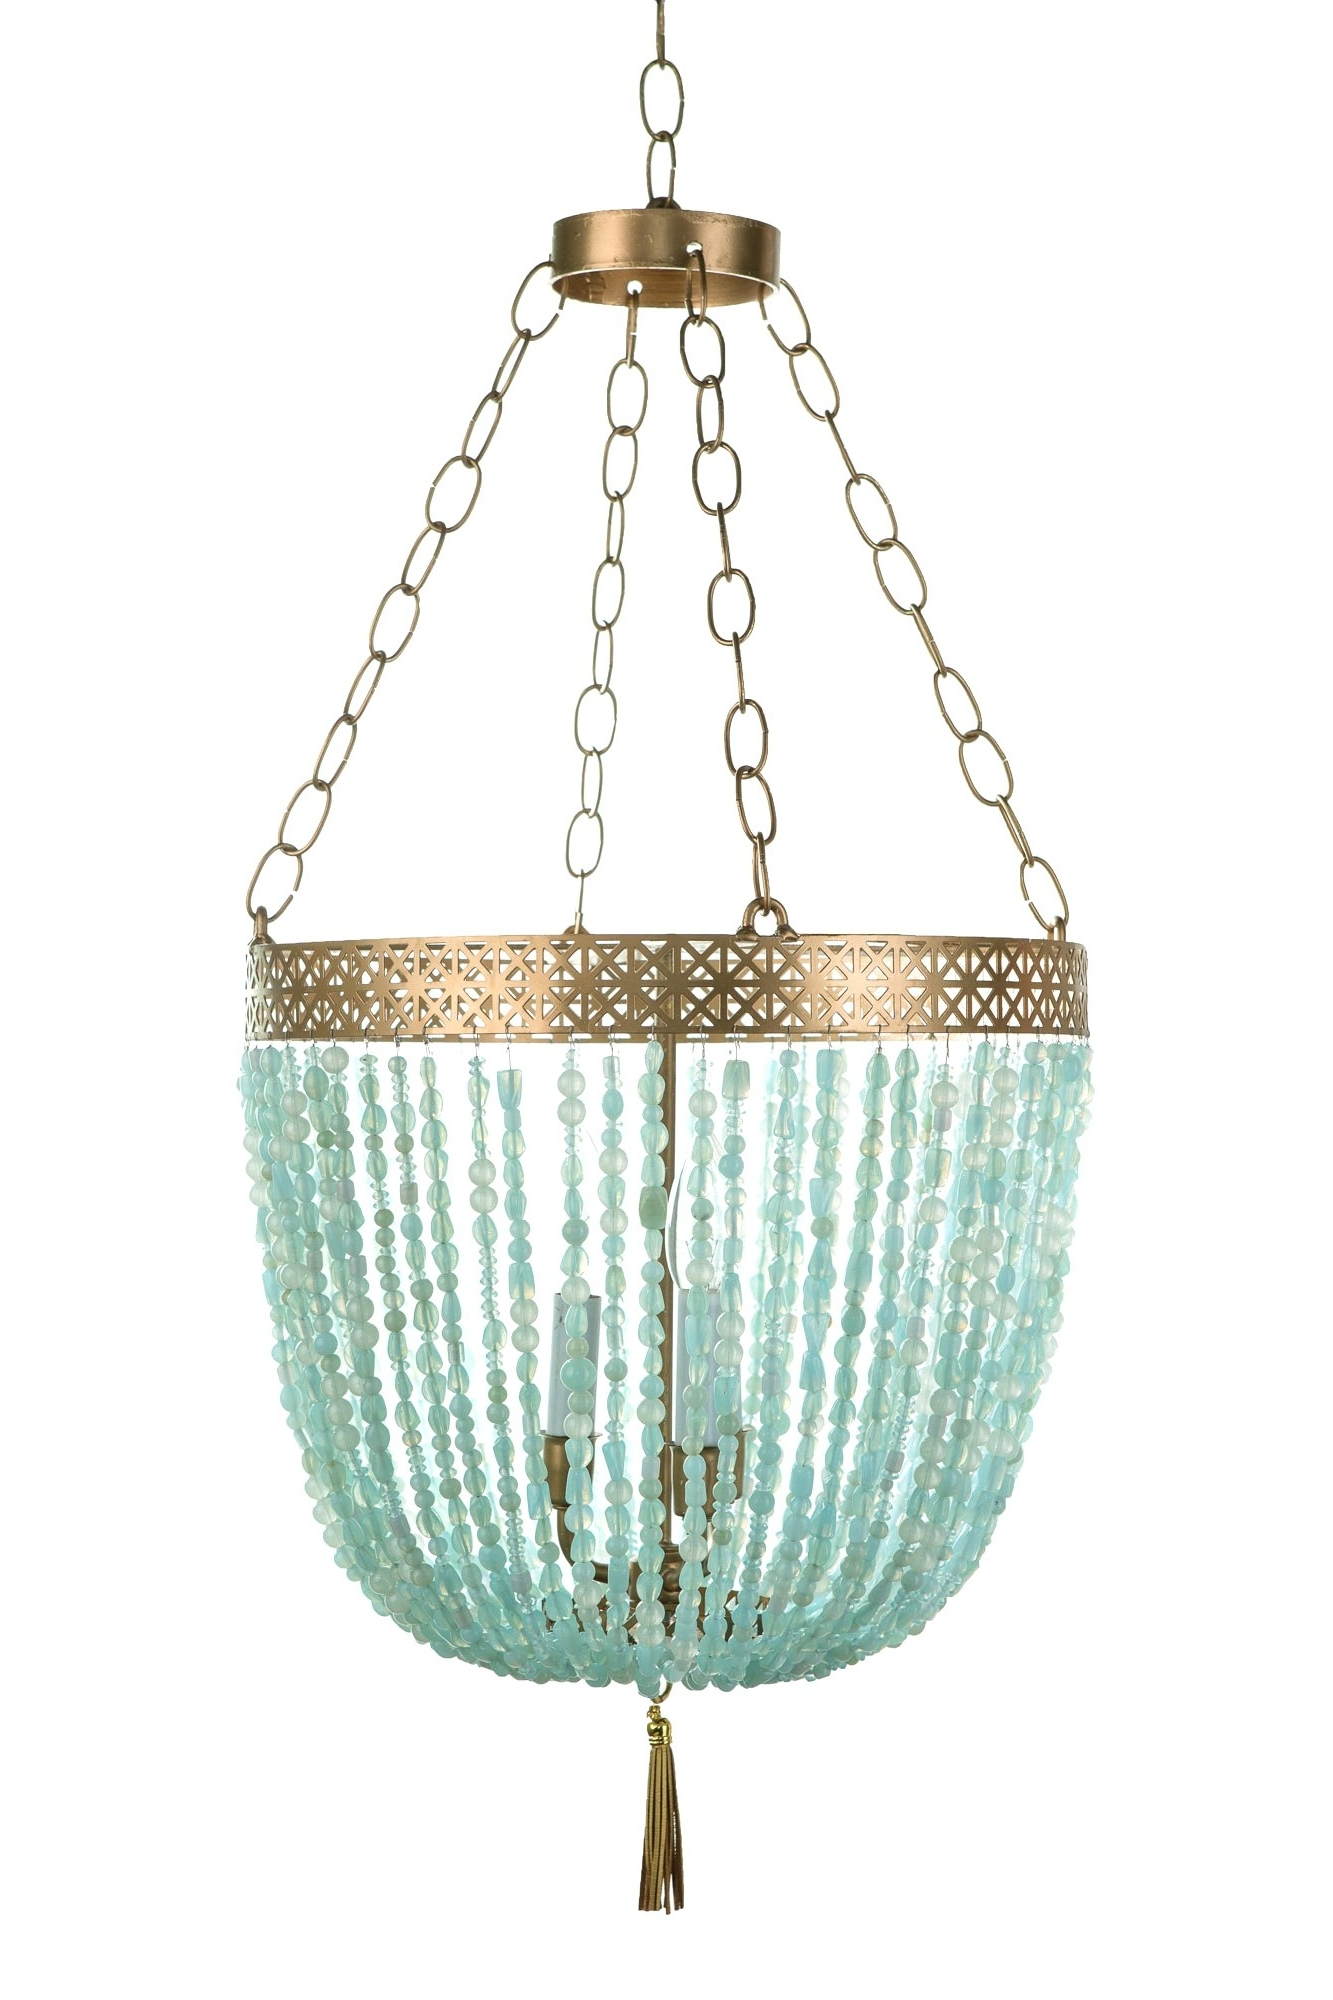 Trendy Turquoise And Gold Chandeliers Throughout Chandeliers Design : Magnificent Stylish Repair Turquoise Chandelier (View 6 of 20)